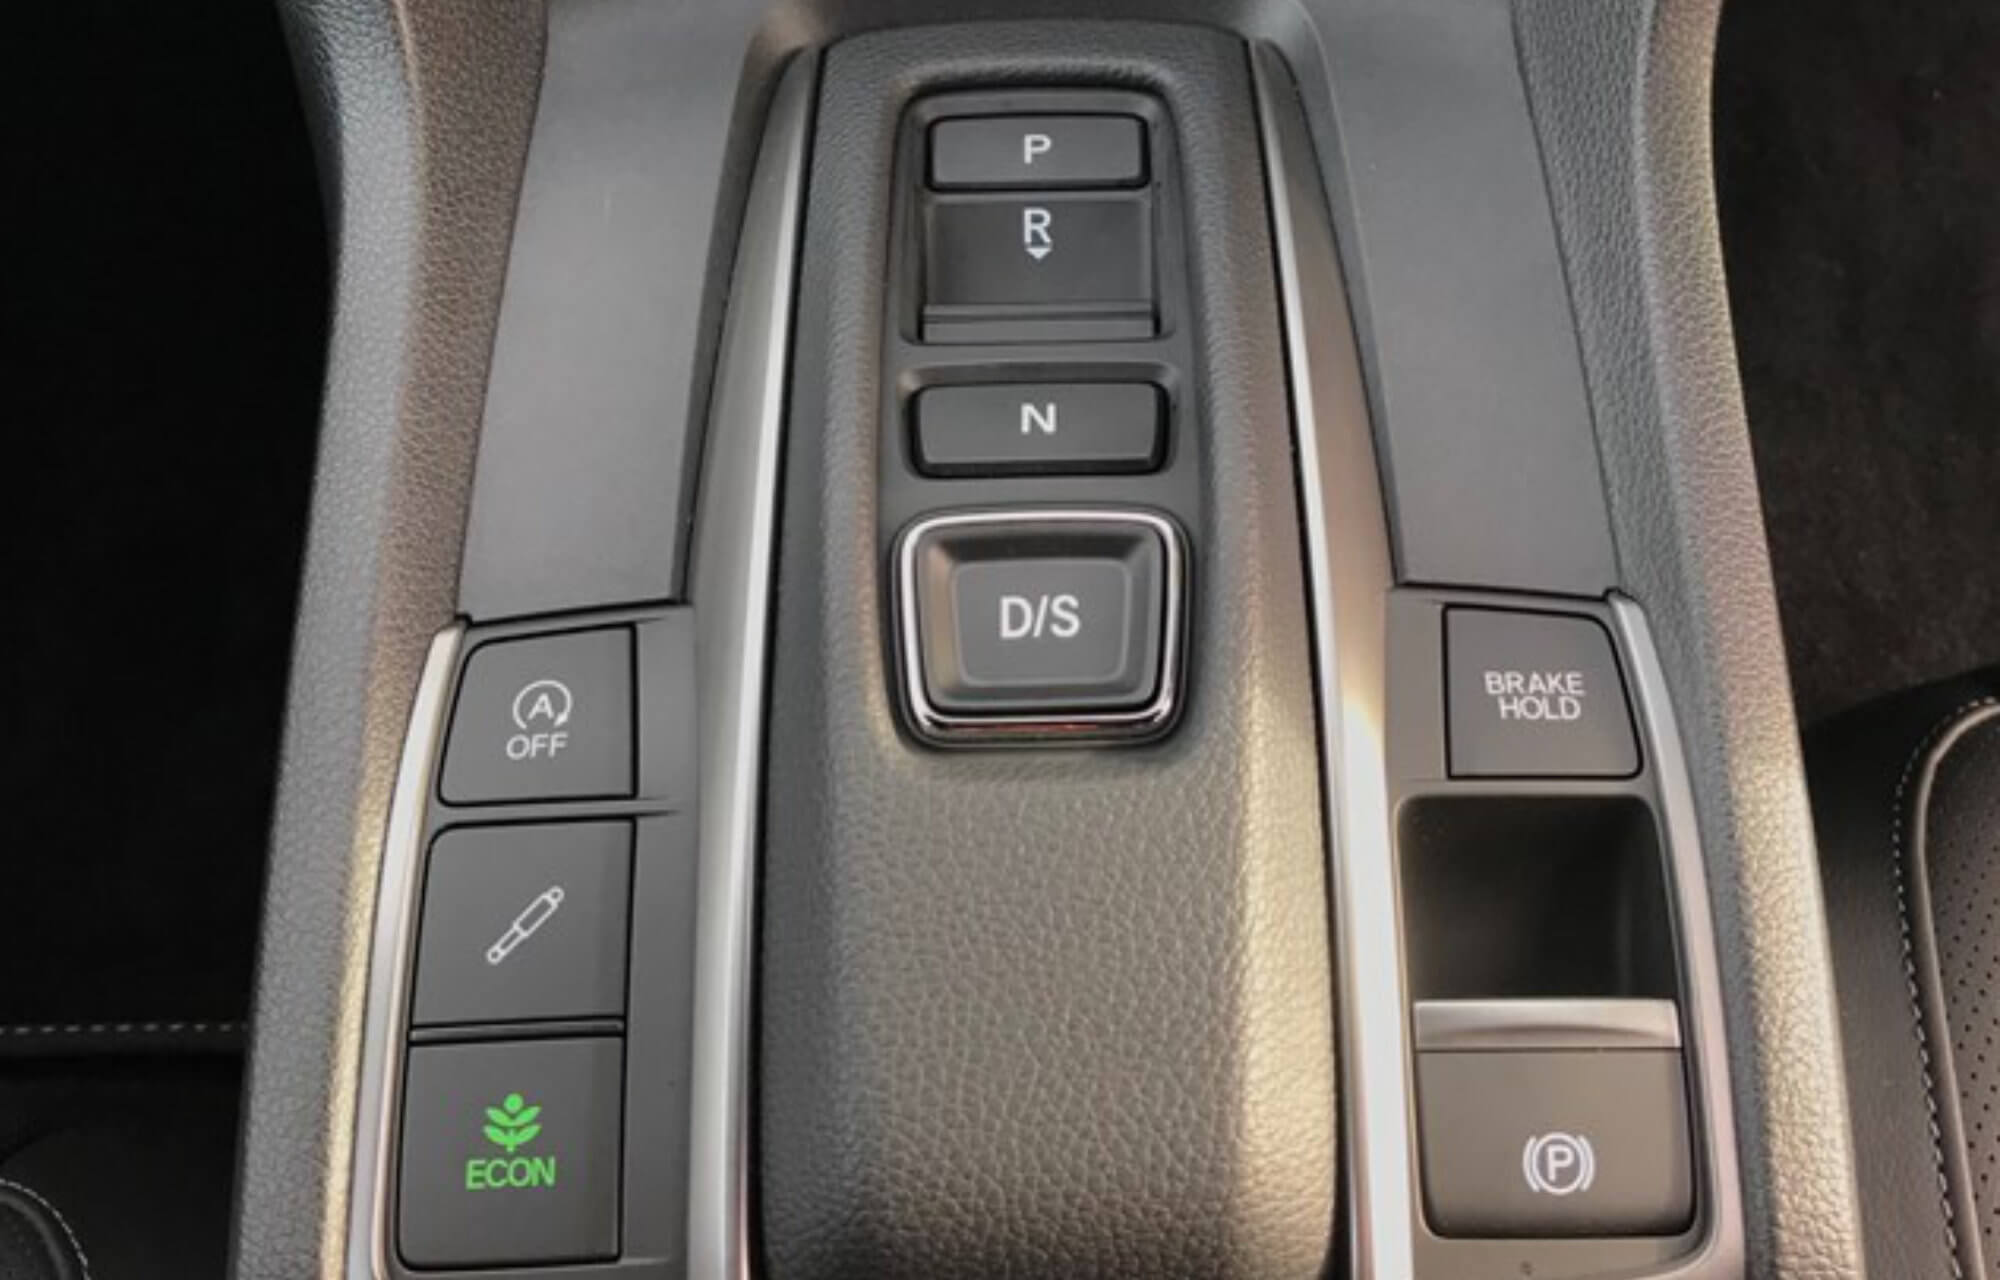 The New Civic 9-Speed Automatic